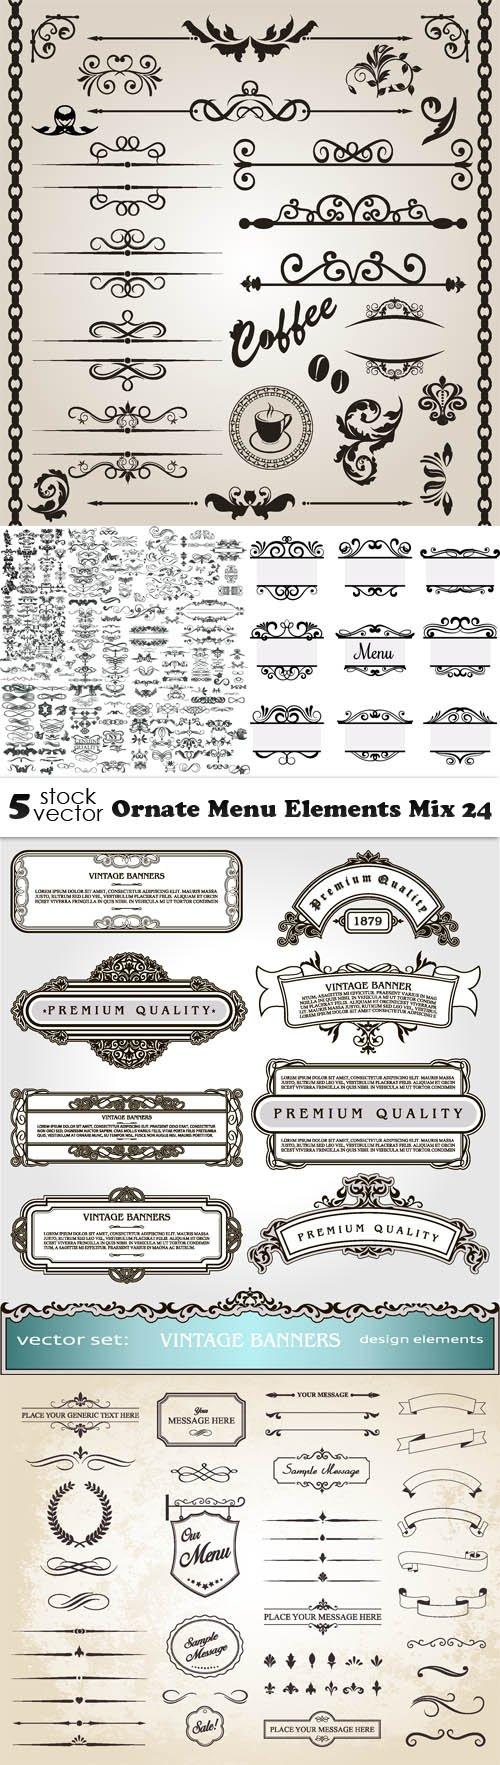 Vectors - Ornate Menu Elements Mix 24